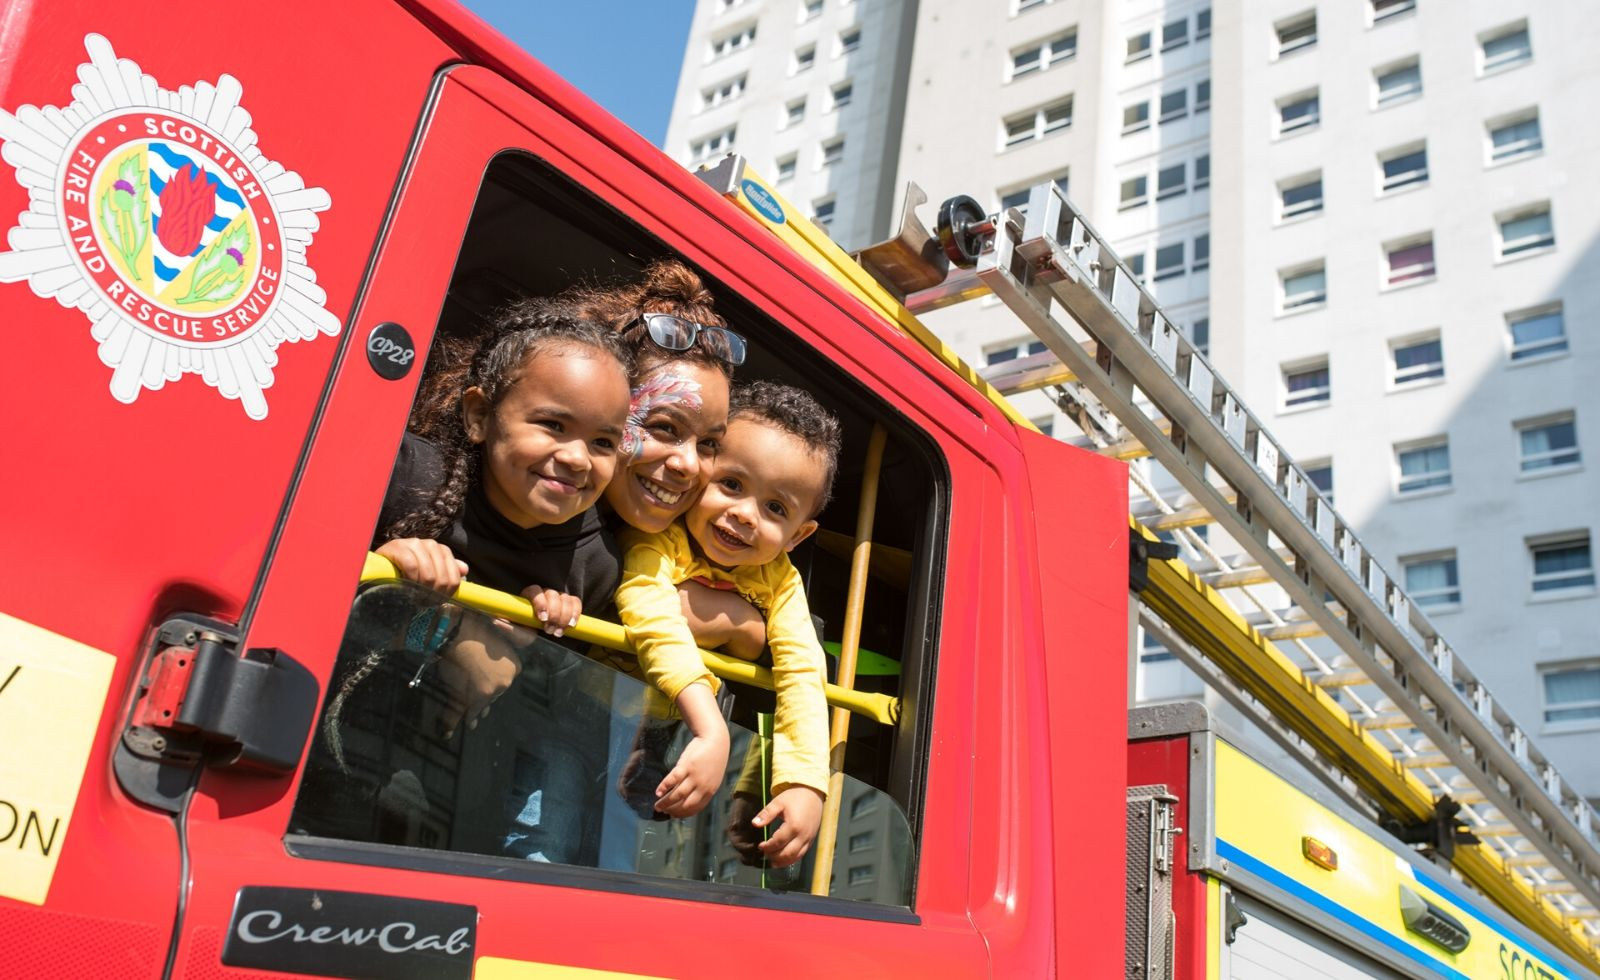 Three faces looking and smiling out the window of a fire engine